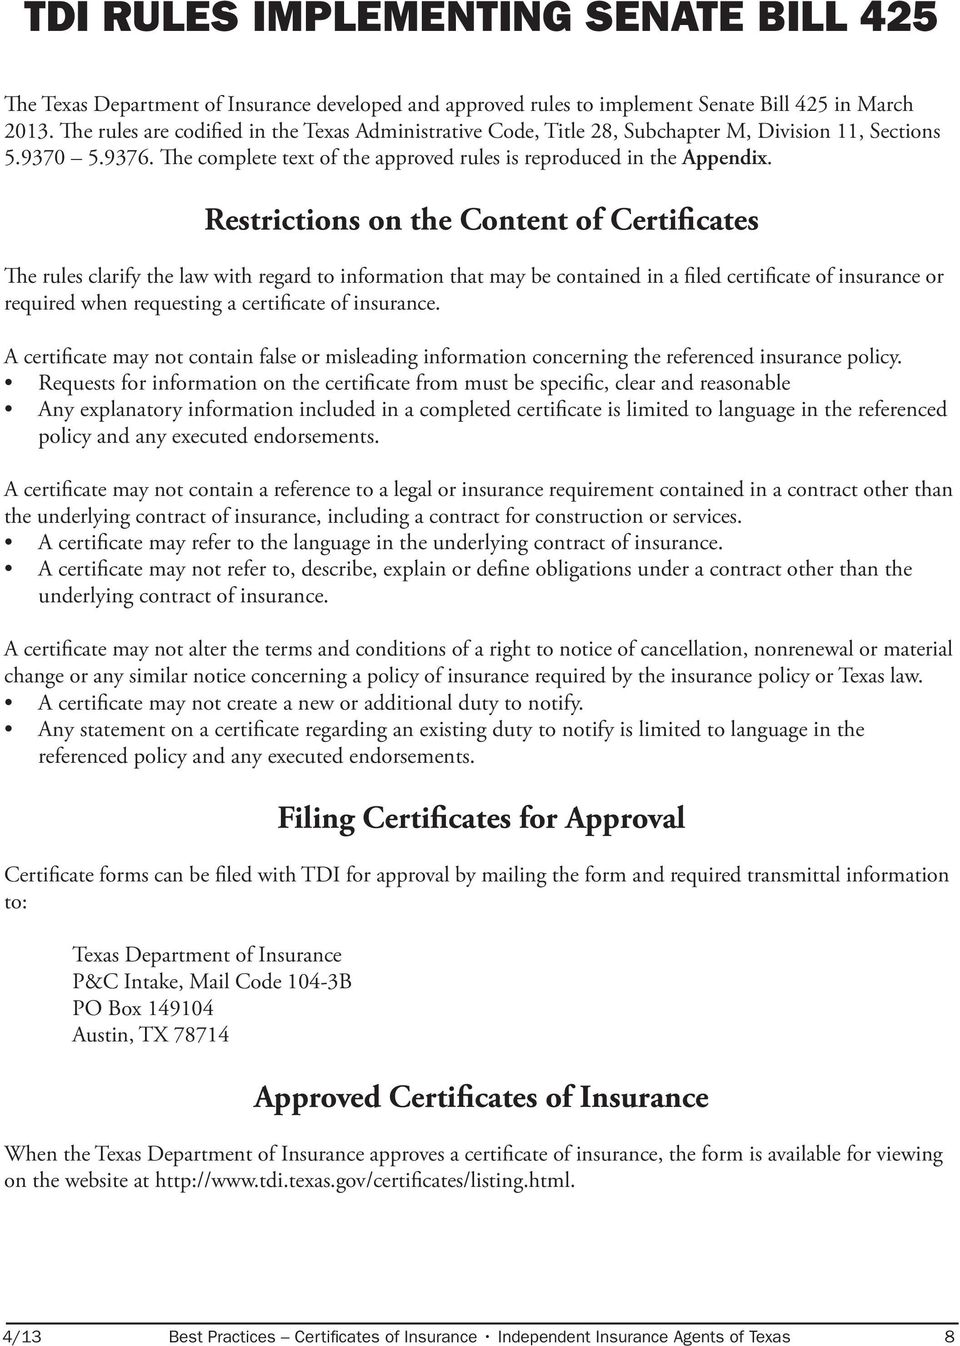 Restrictions on the Content of Certificates The rules clarify the law with regard to information that may be contained in a filed certificate of insurance or required when requesting a certificate of